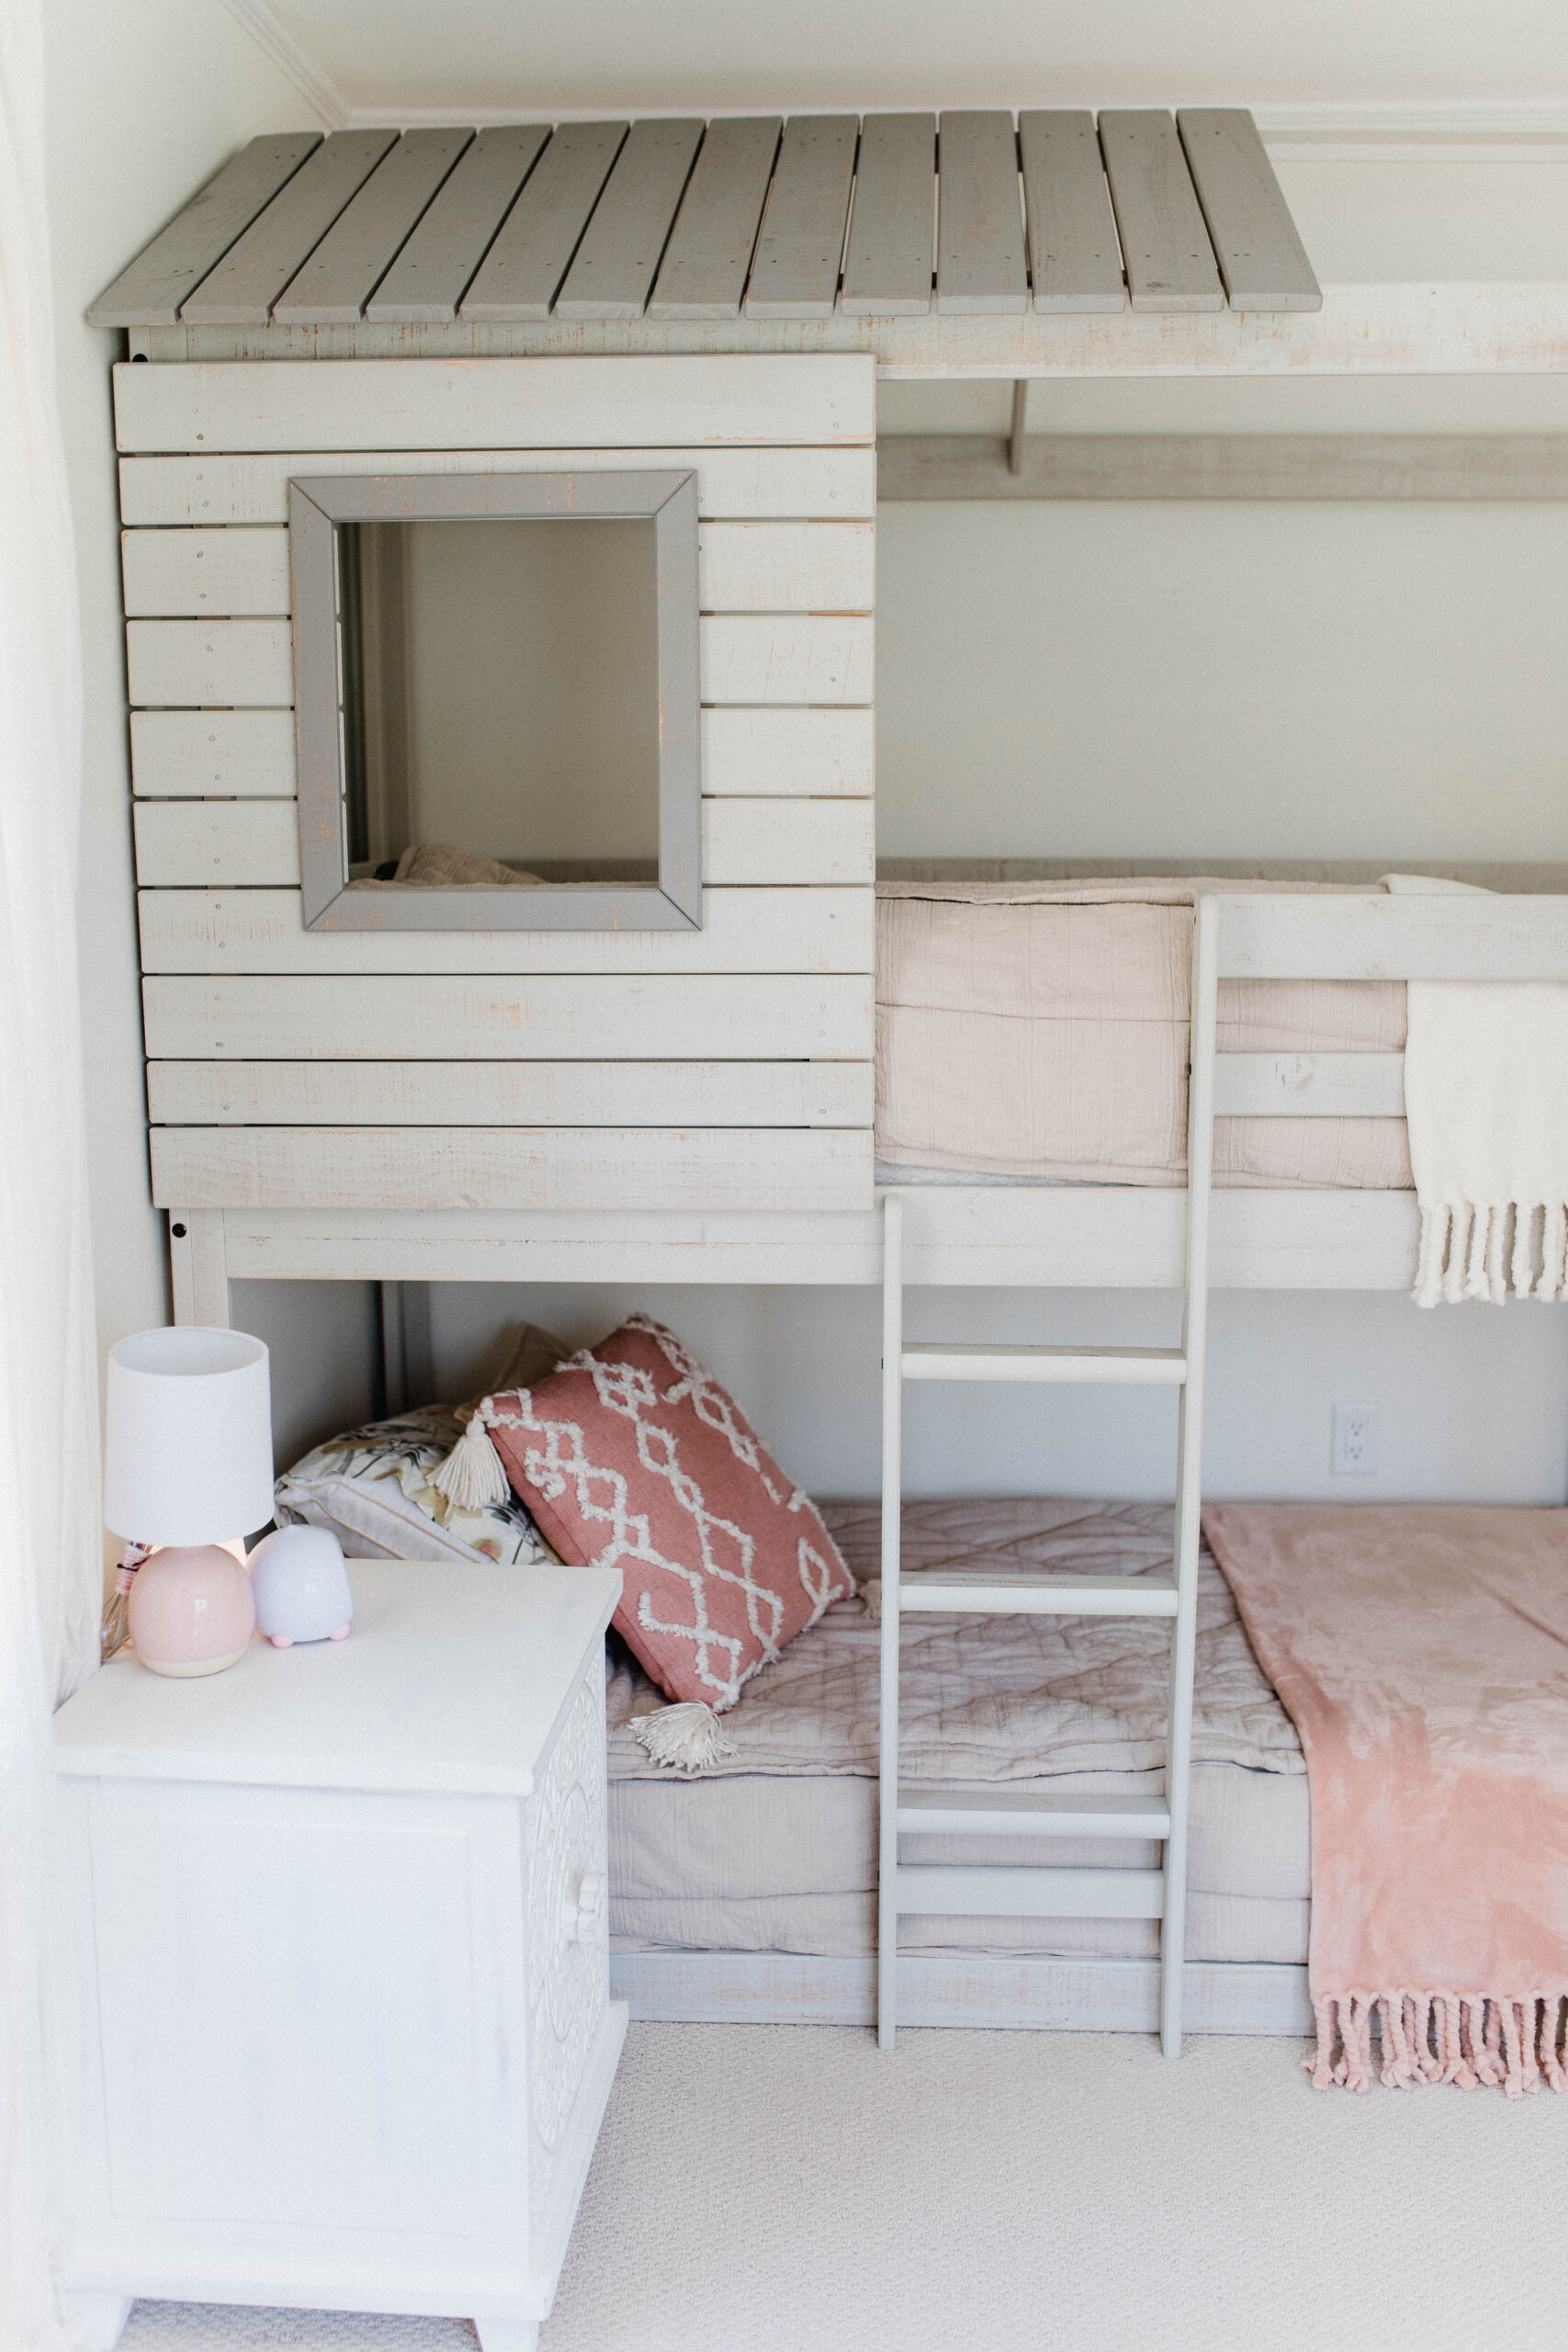 Connecticut life and style blogger Lauren McBride shares her daughter's bedroom - a fun, girly, and sophisticated space for a growing little girl.